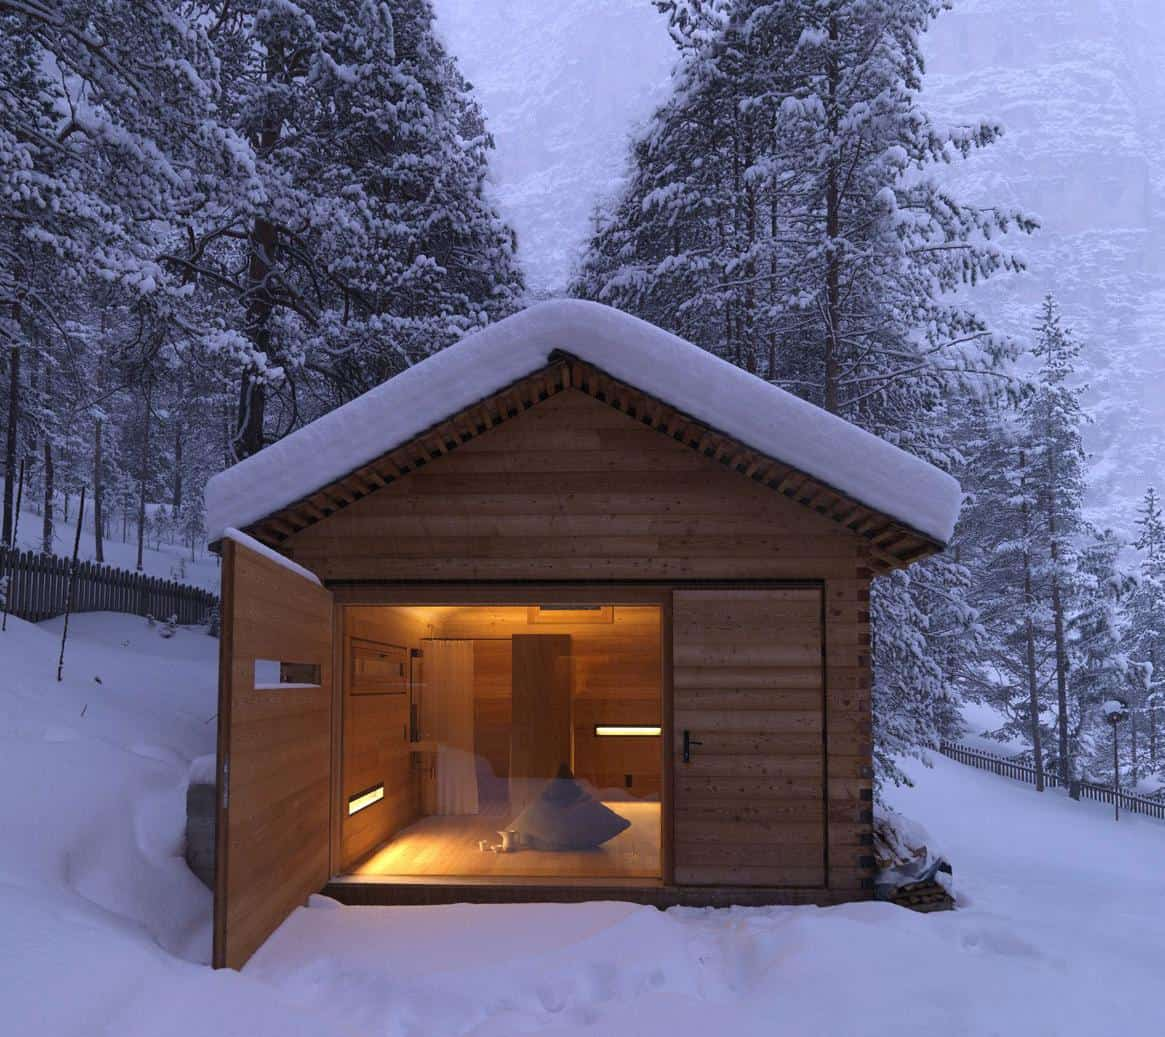 Cozy Mountain Cabin Can Open Up To The Elements